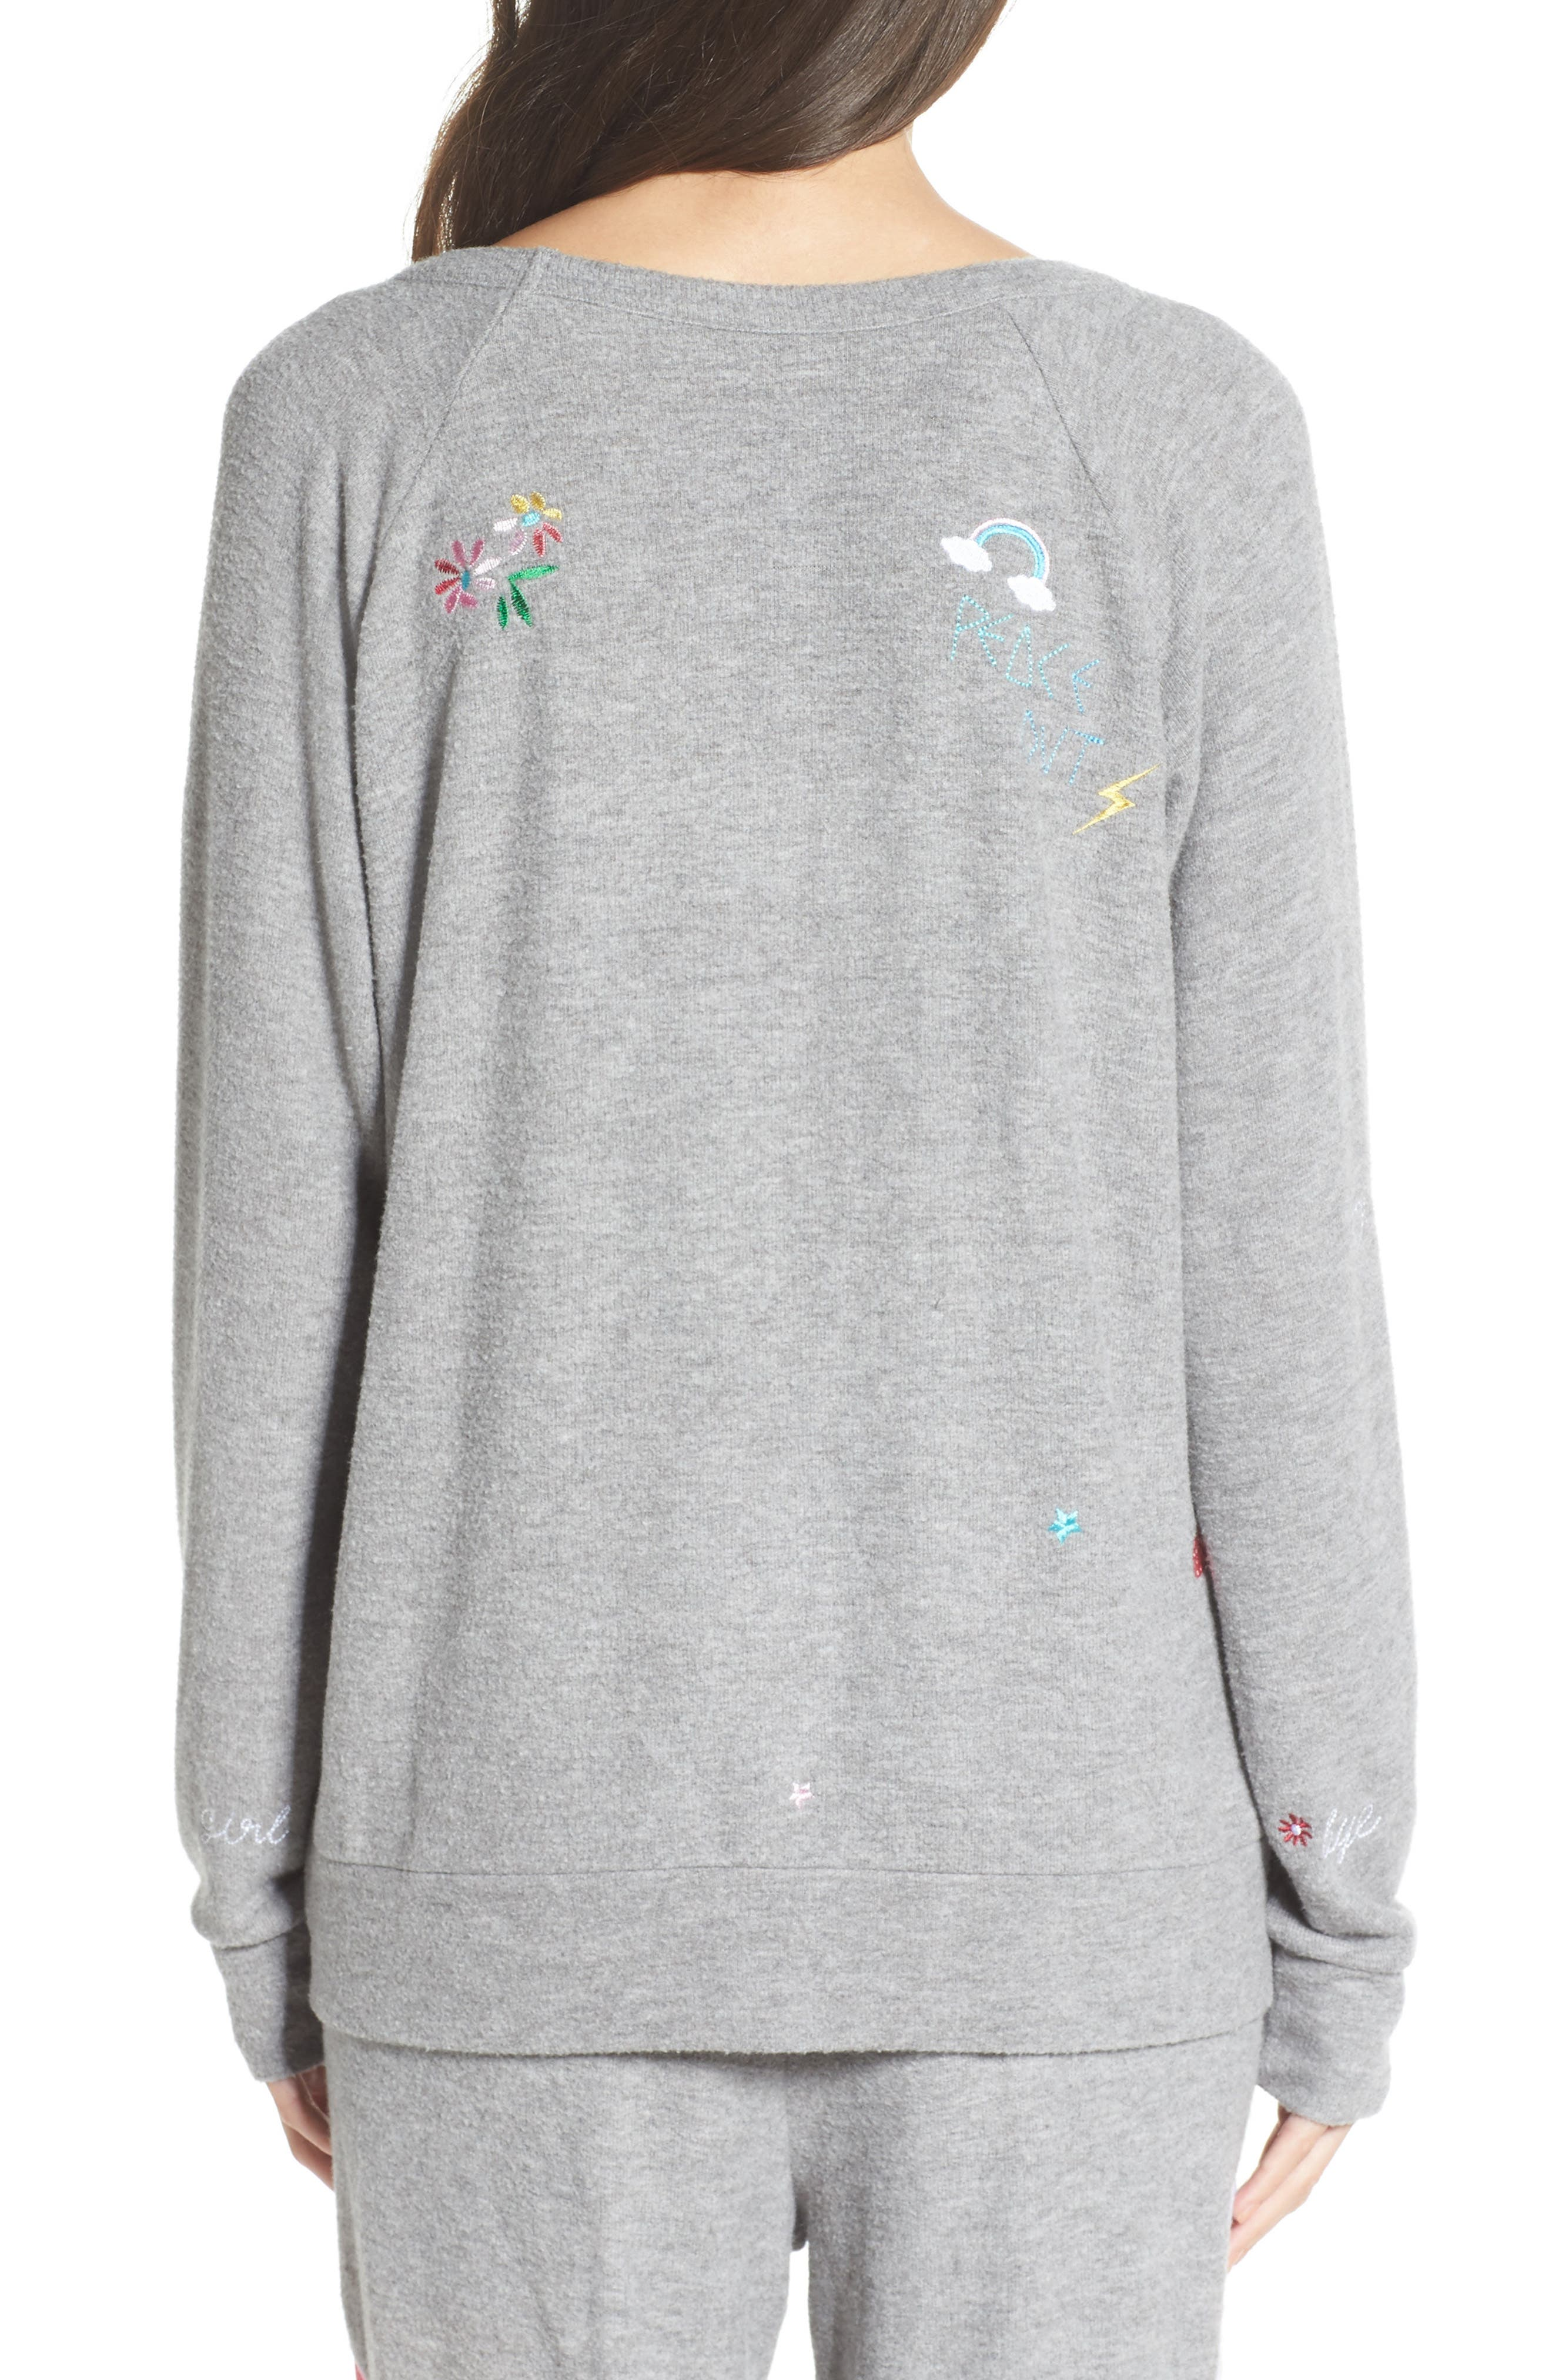 Patched Up Sweatshirt,                             Alternate thumbnail 2, color,                             039